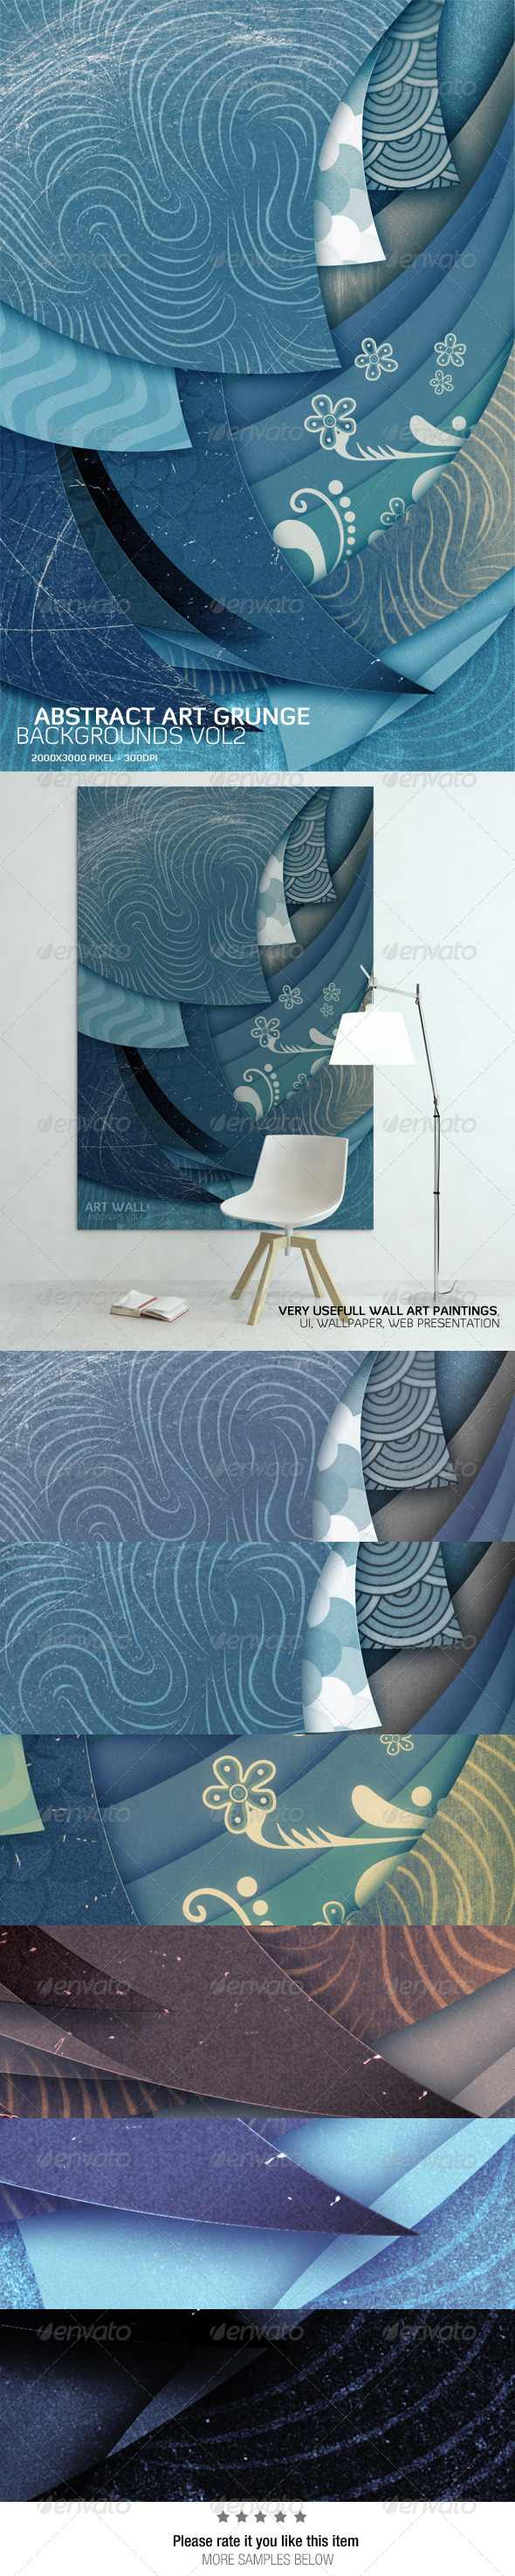 GraphicRiver Abstract Art Grunge Background Vol2 7577078